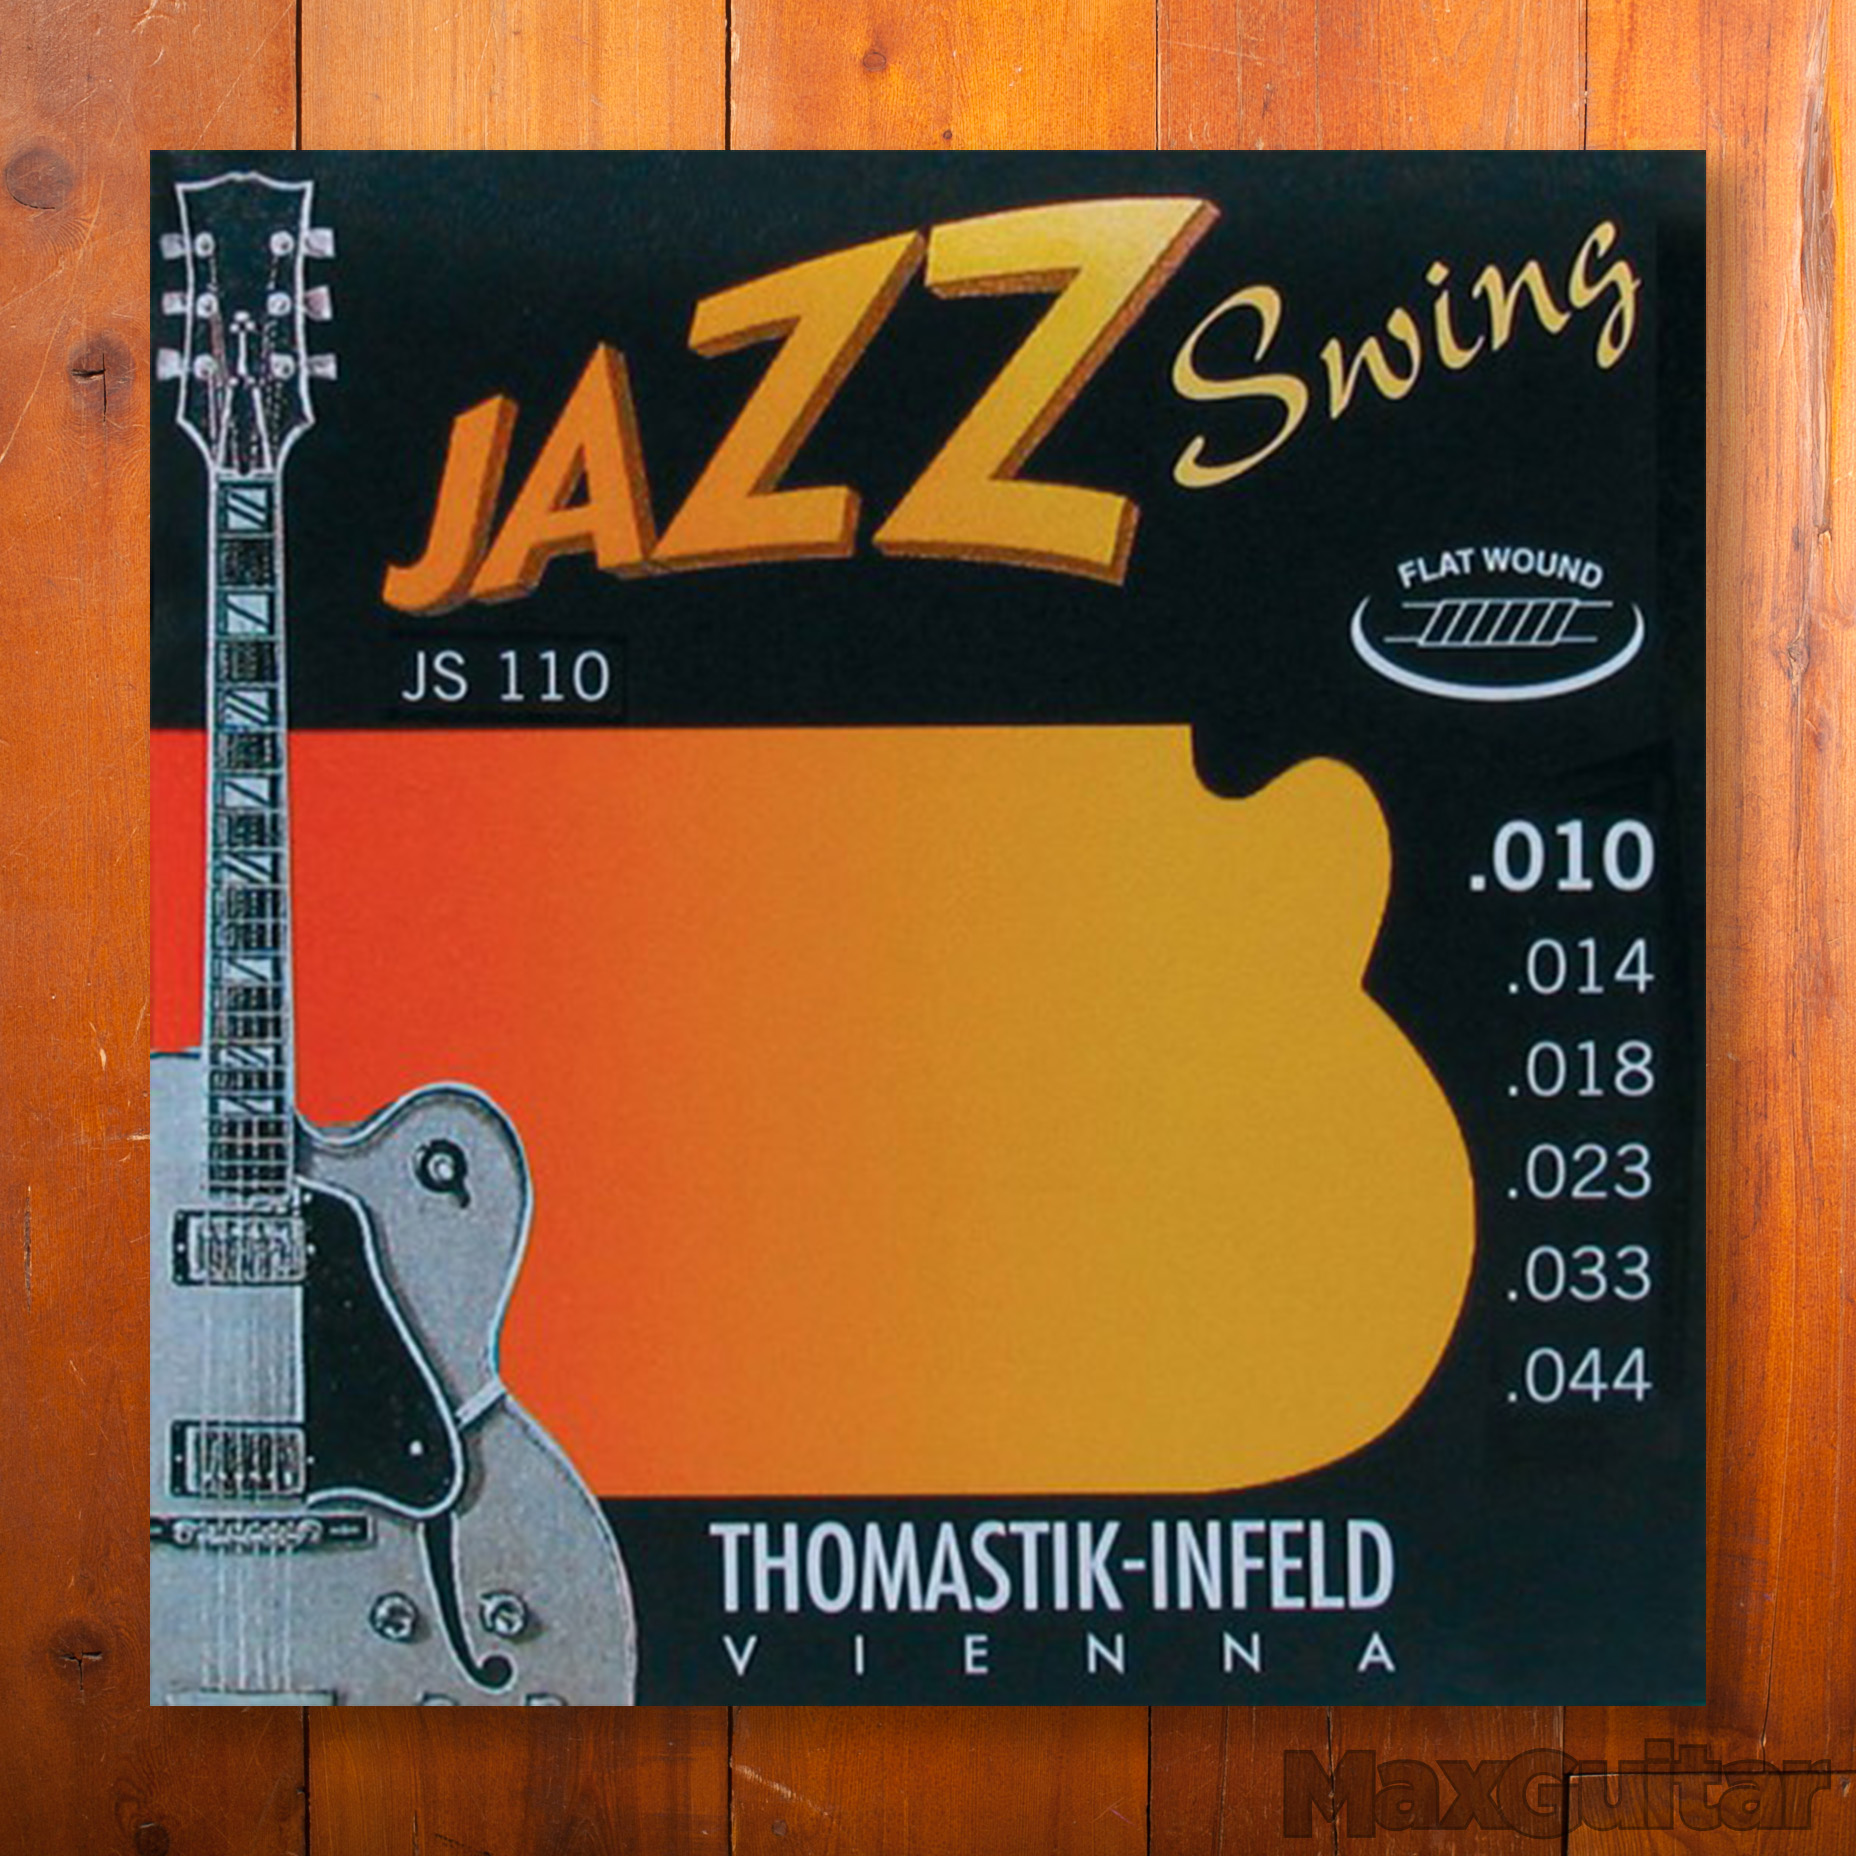 Thomastik-Infeld JS110 Jazz Swing Flatwound Extra Light